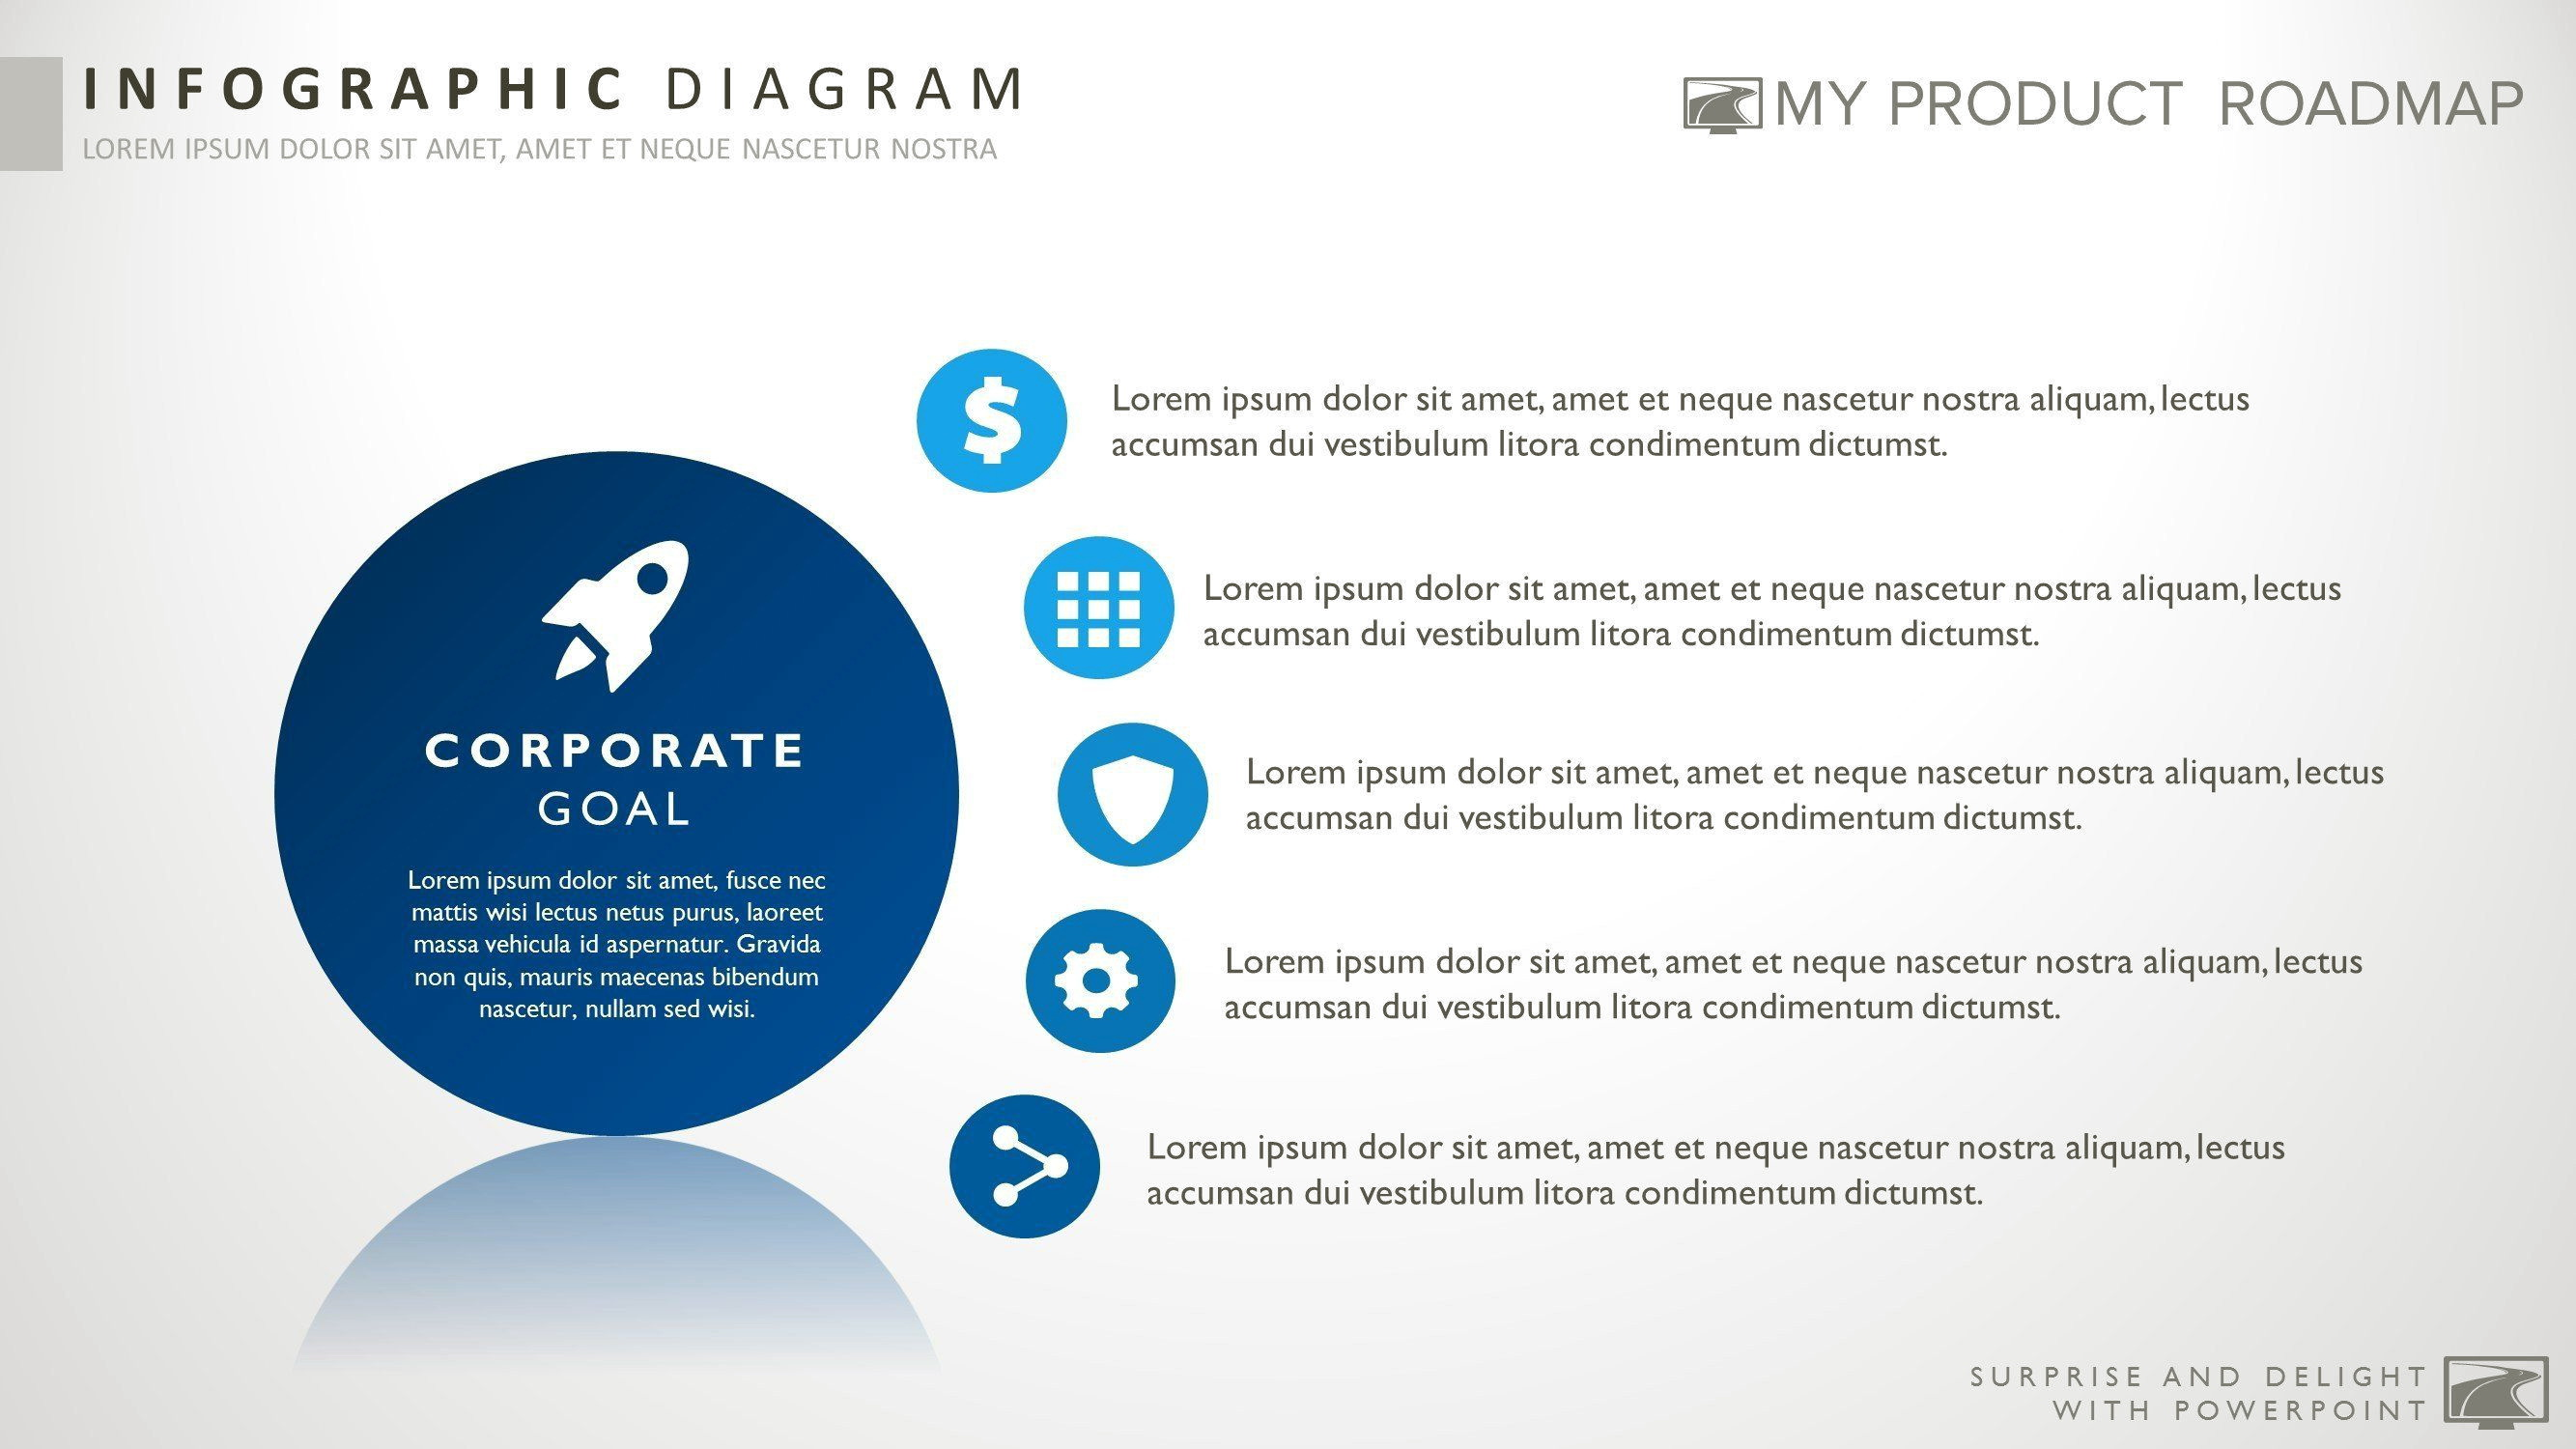 Powerpoint Smartart List Templates